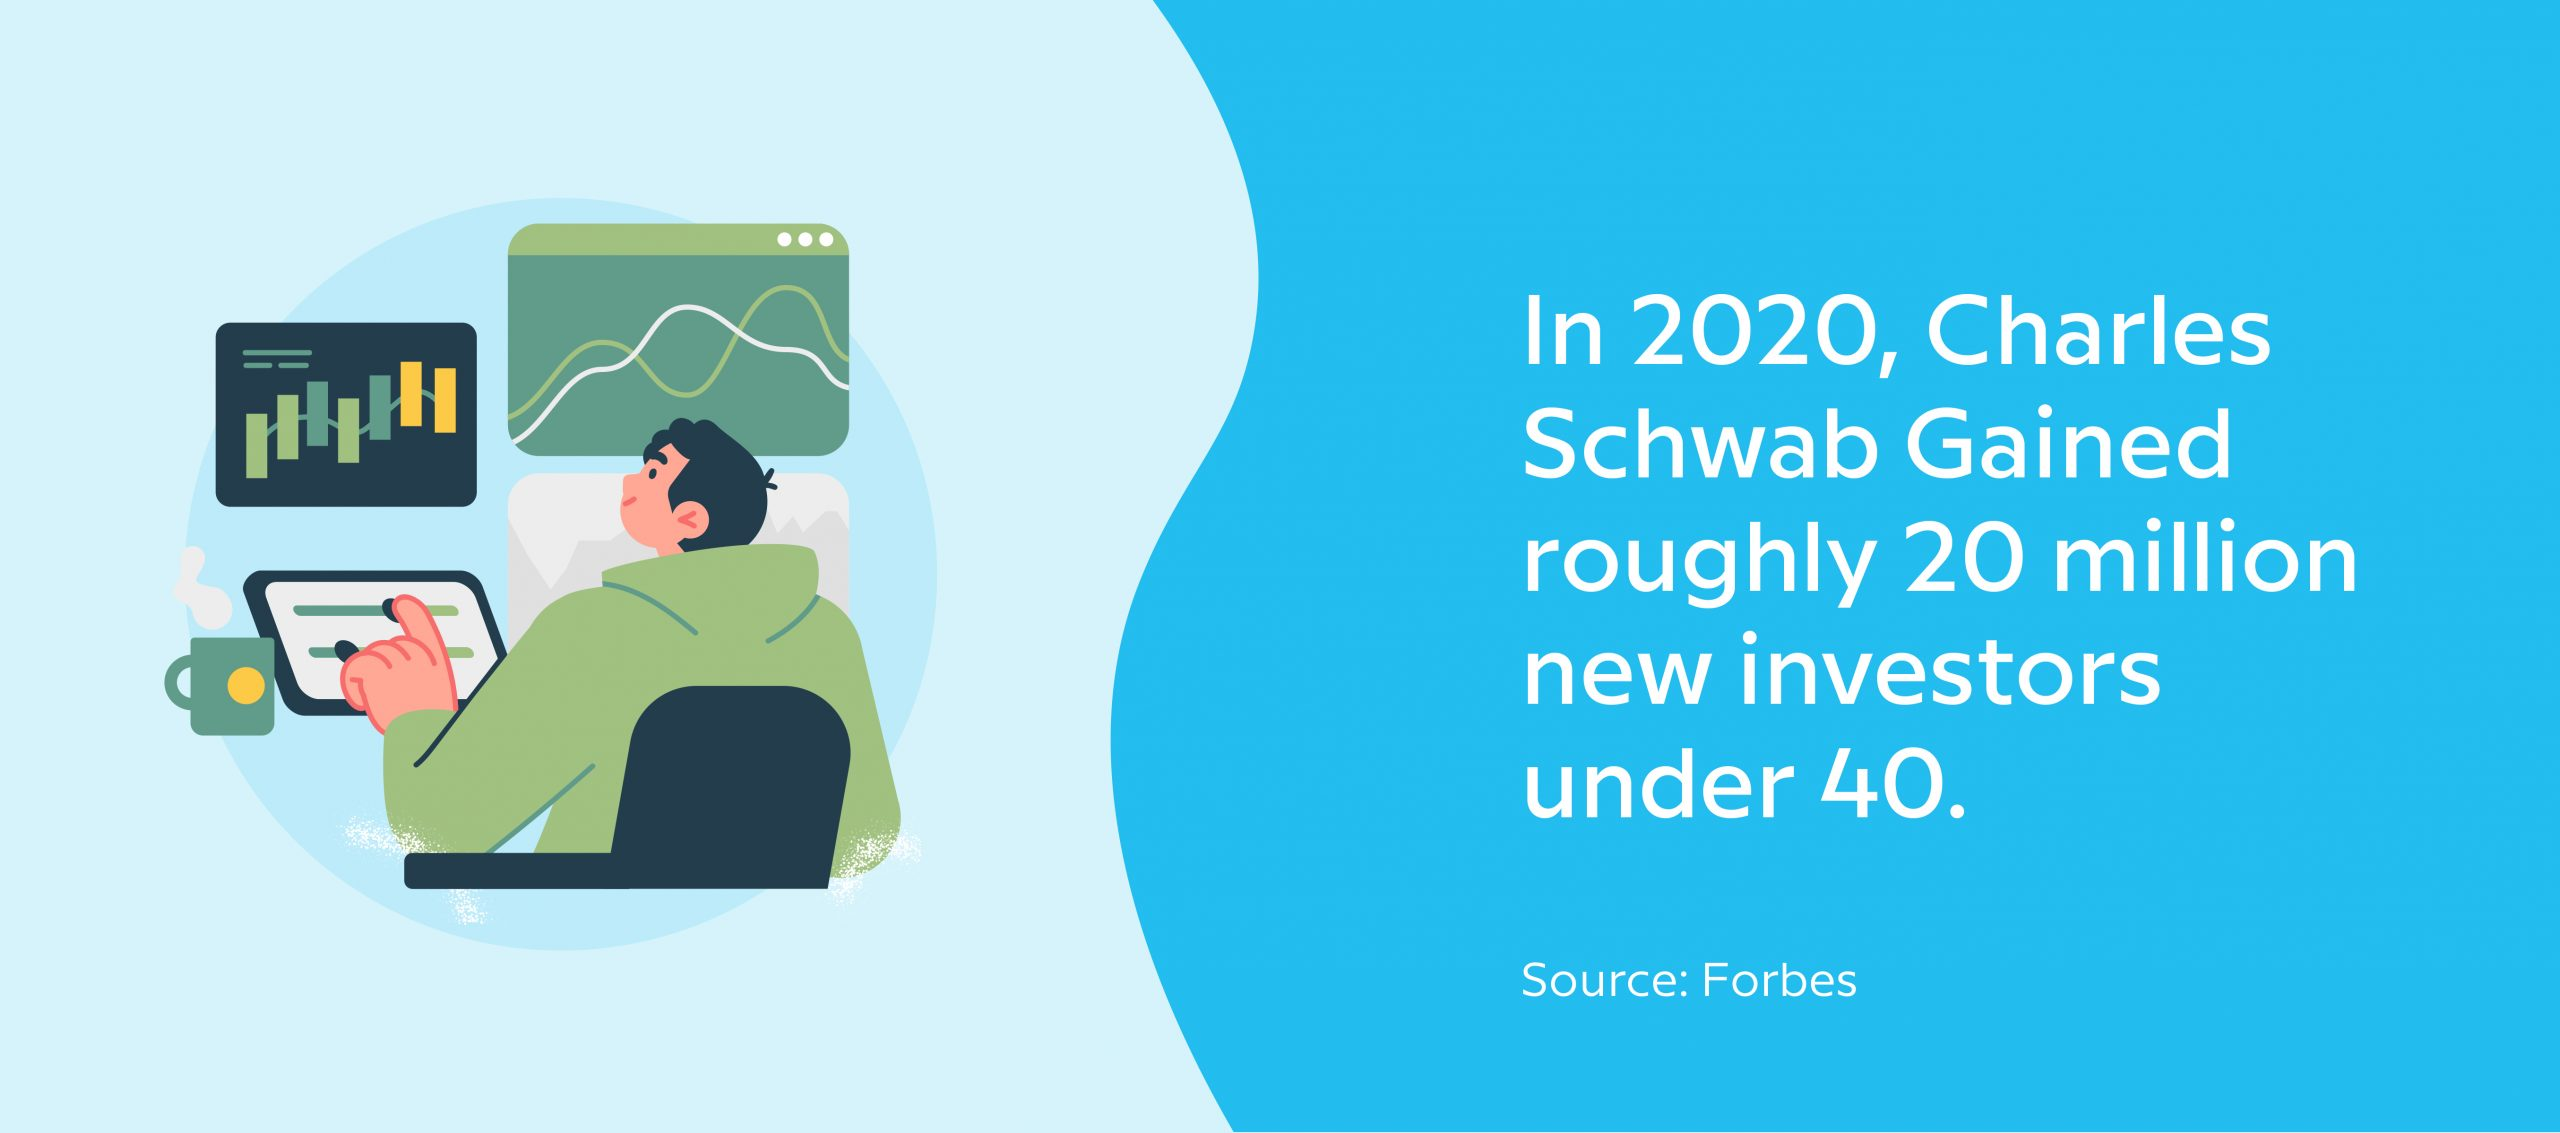 In 2020, Charles Schwab gained roughly 20 million new investors under 40 - Source Forbes - Image of a man in a hoodie looking at a tablet and charts